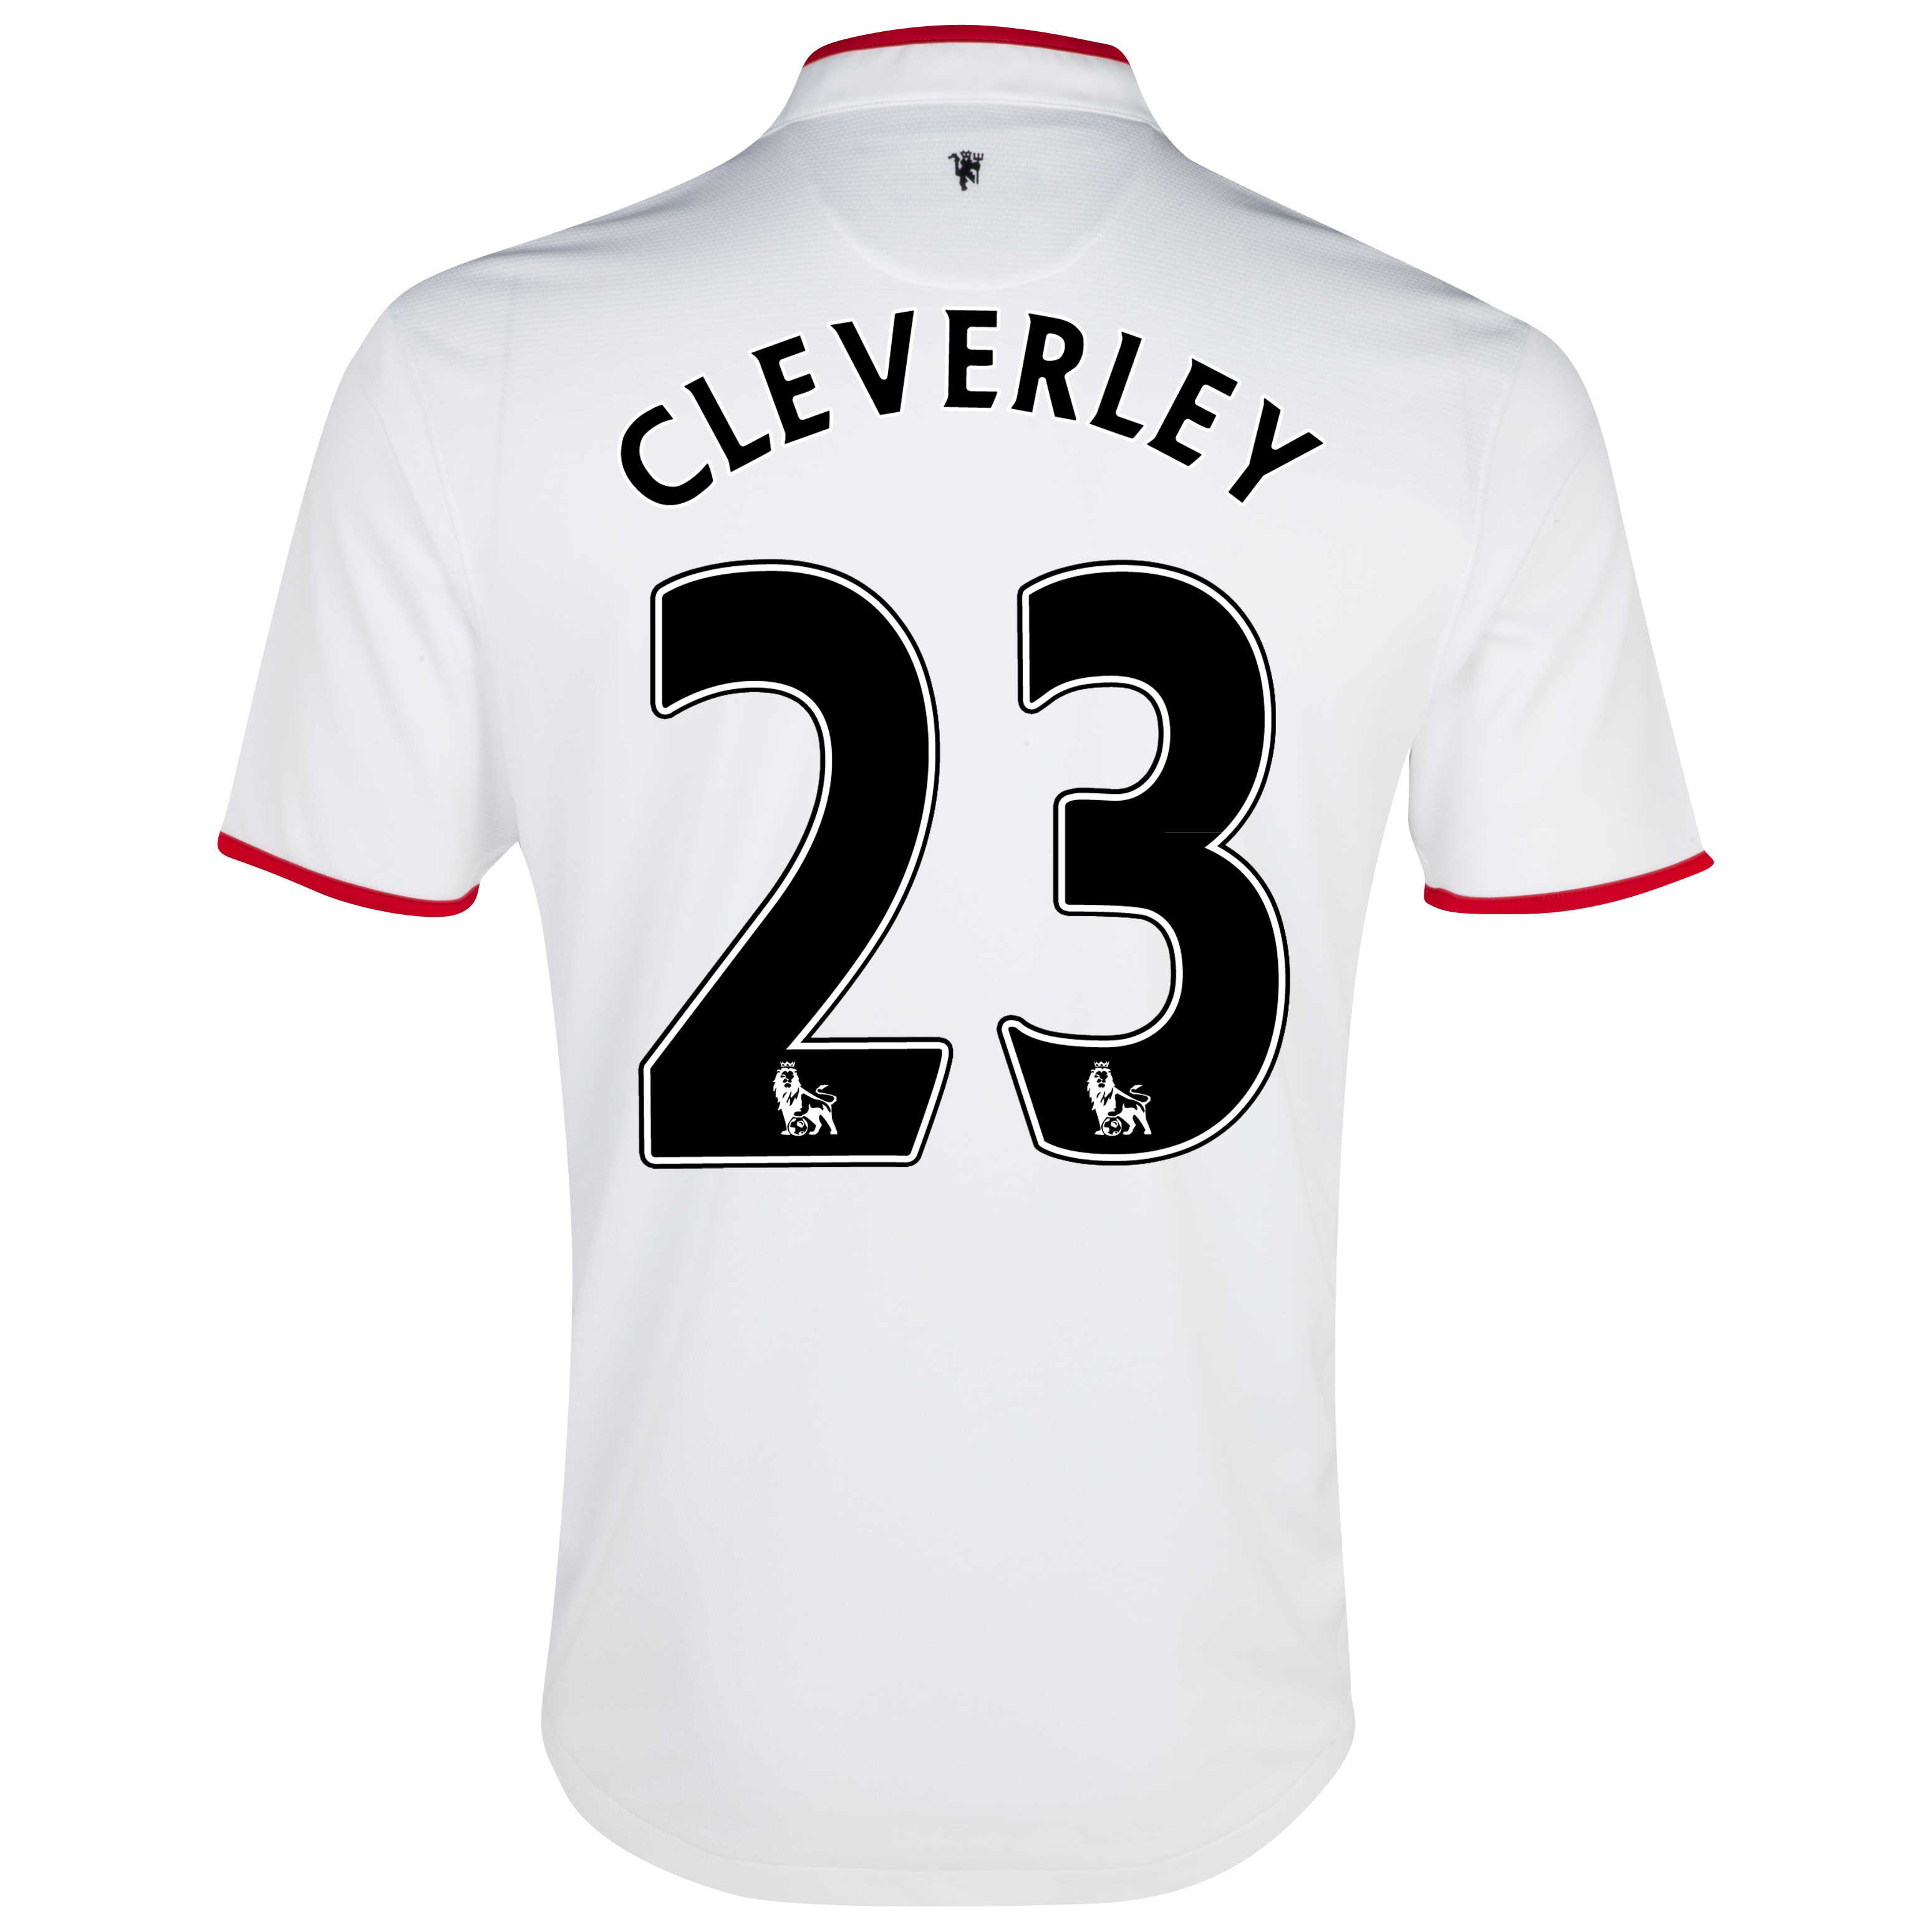 Manchester United Away Shirt 2012/13 with Cleverley 23 printing